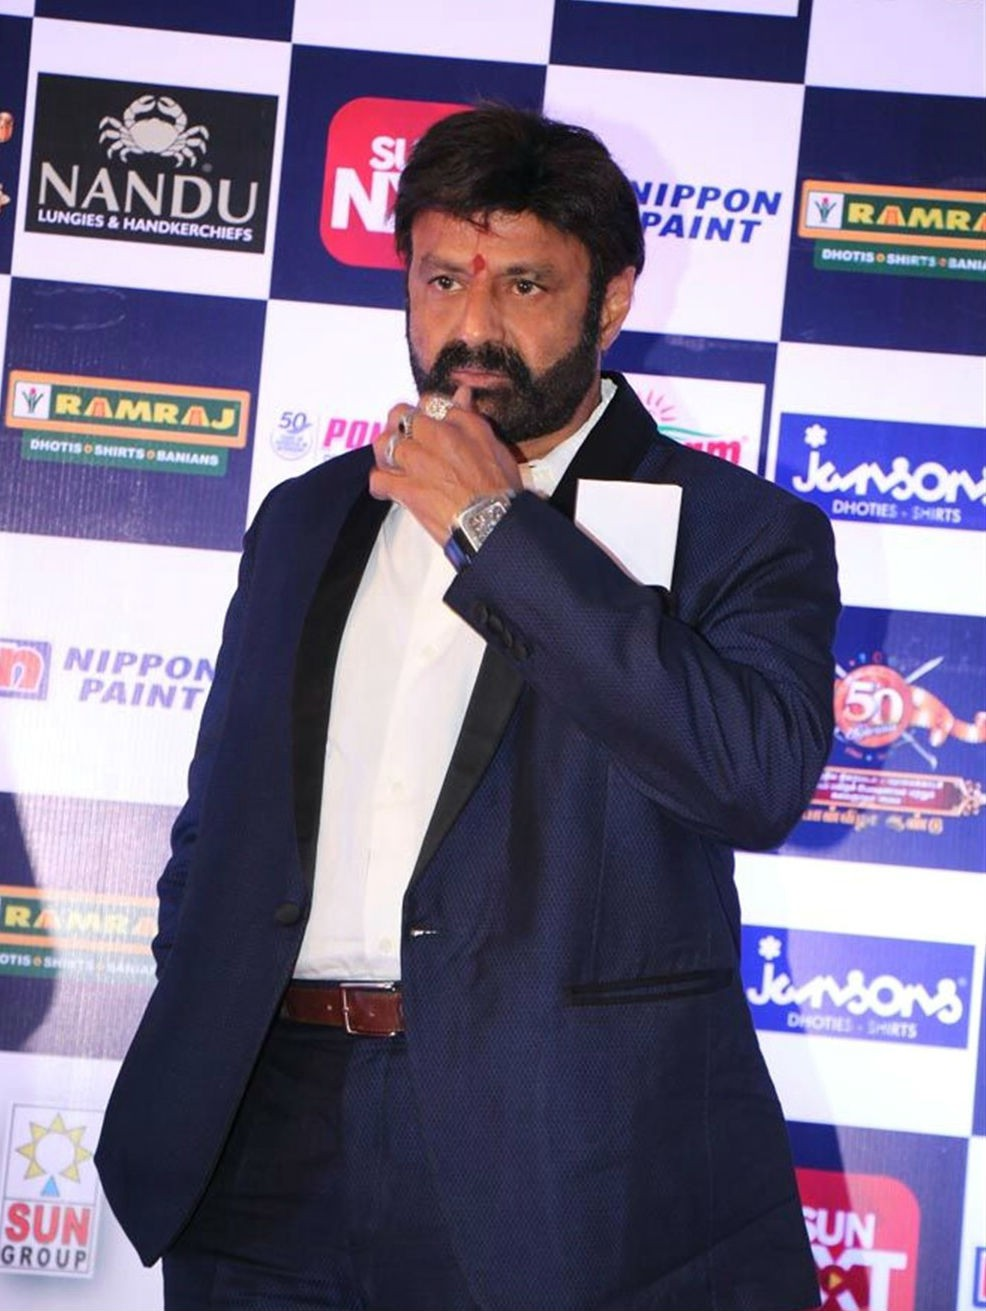 Nandamuri Balakrishna,Balakrishna,Stunt Union Golden Jubilee Celebration,Stunt Union 50th Golden Jubilee Year Celebration,actor Nandamuri Balakrishna